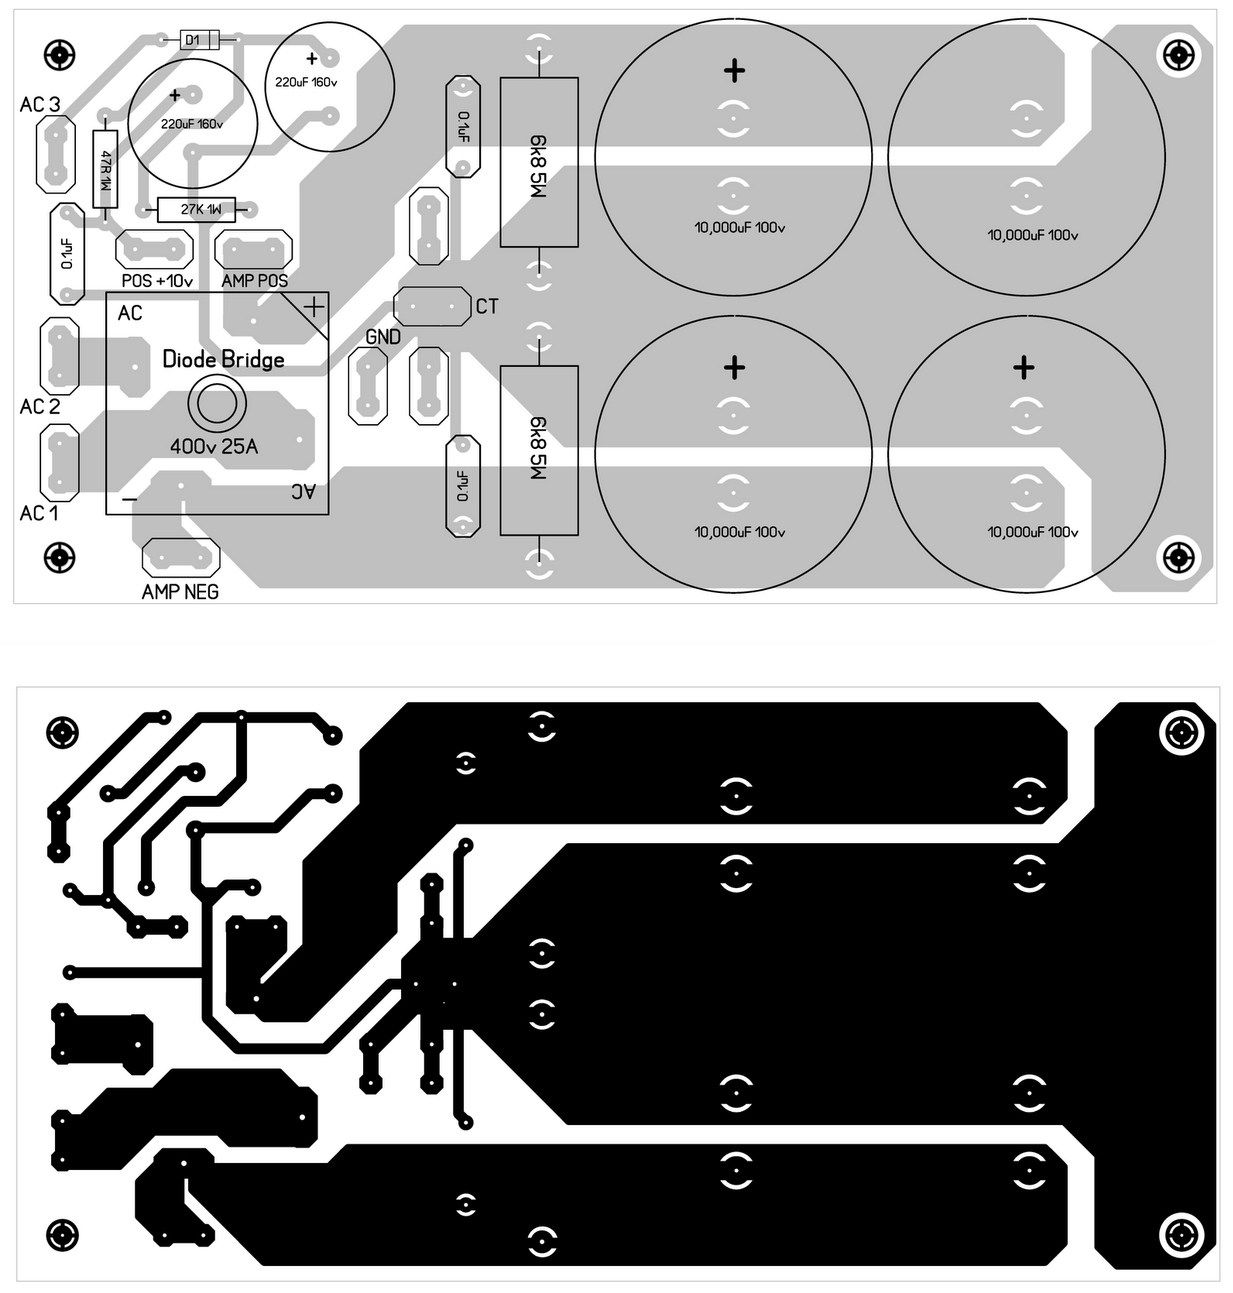 Layout Pcb Design Amplifier Power Supply Regulator Circuit Diagram Usb Switch Nonstopfree Electronic Circuits Project For 600w Mosfet Rh Pinterest Com